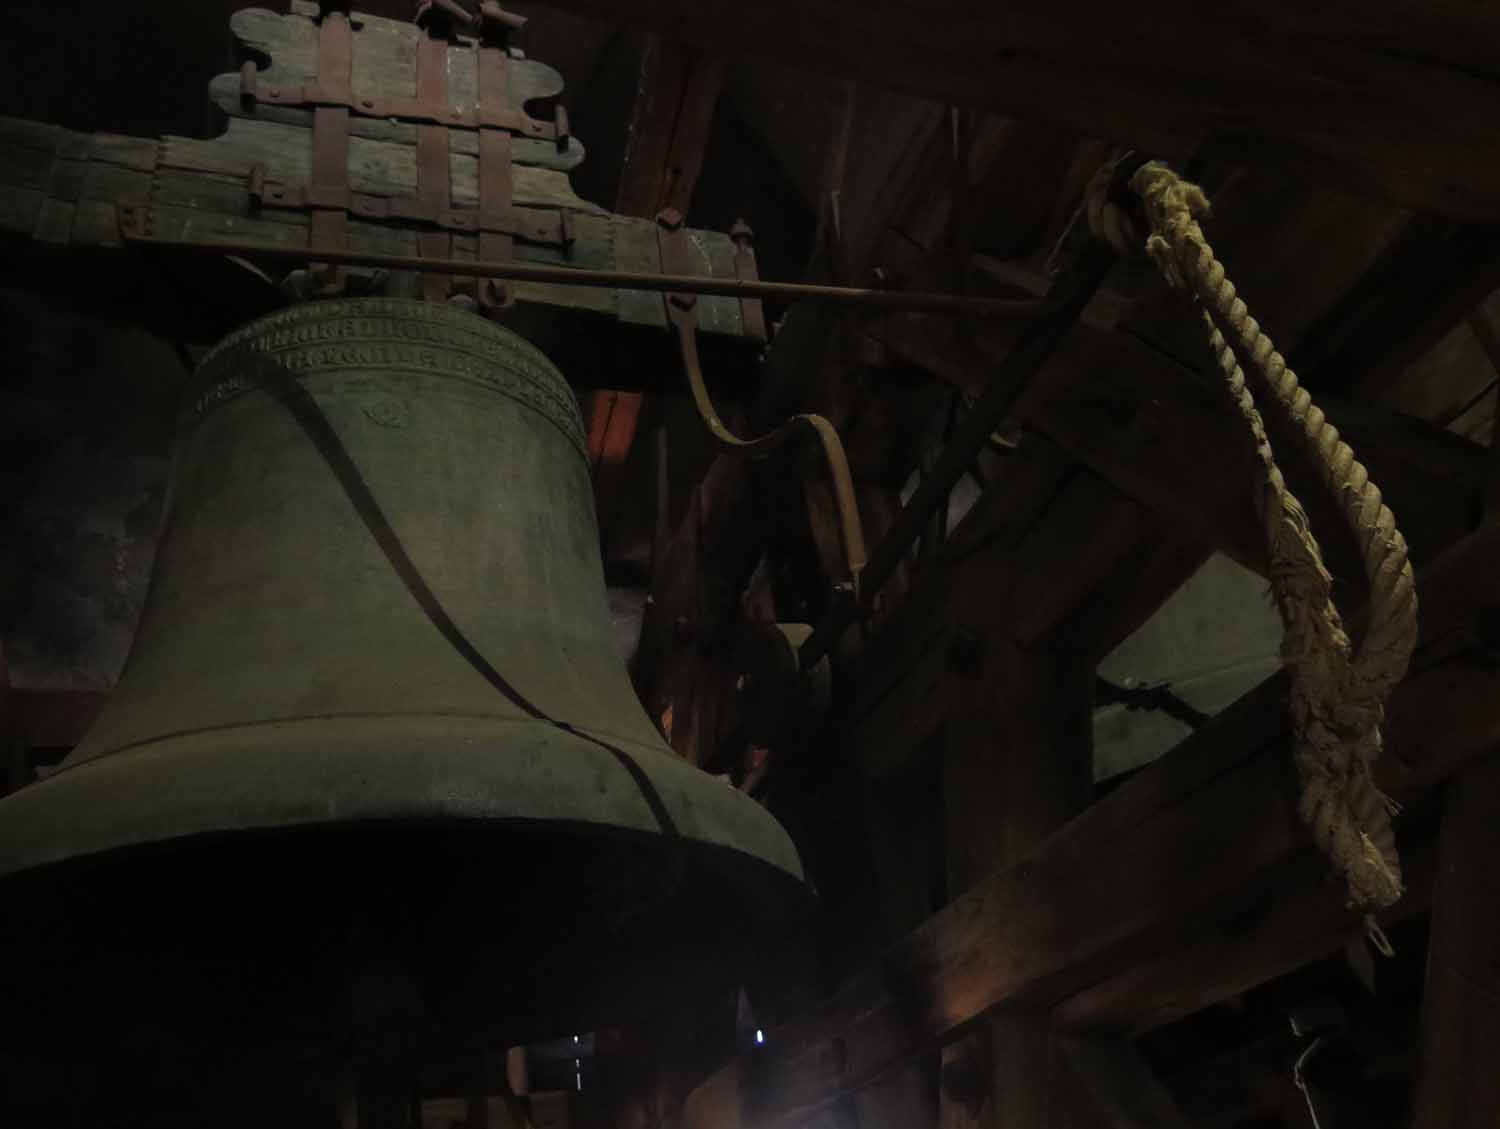 czech-republic-czesky-krumlov-tower-bell